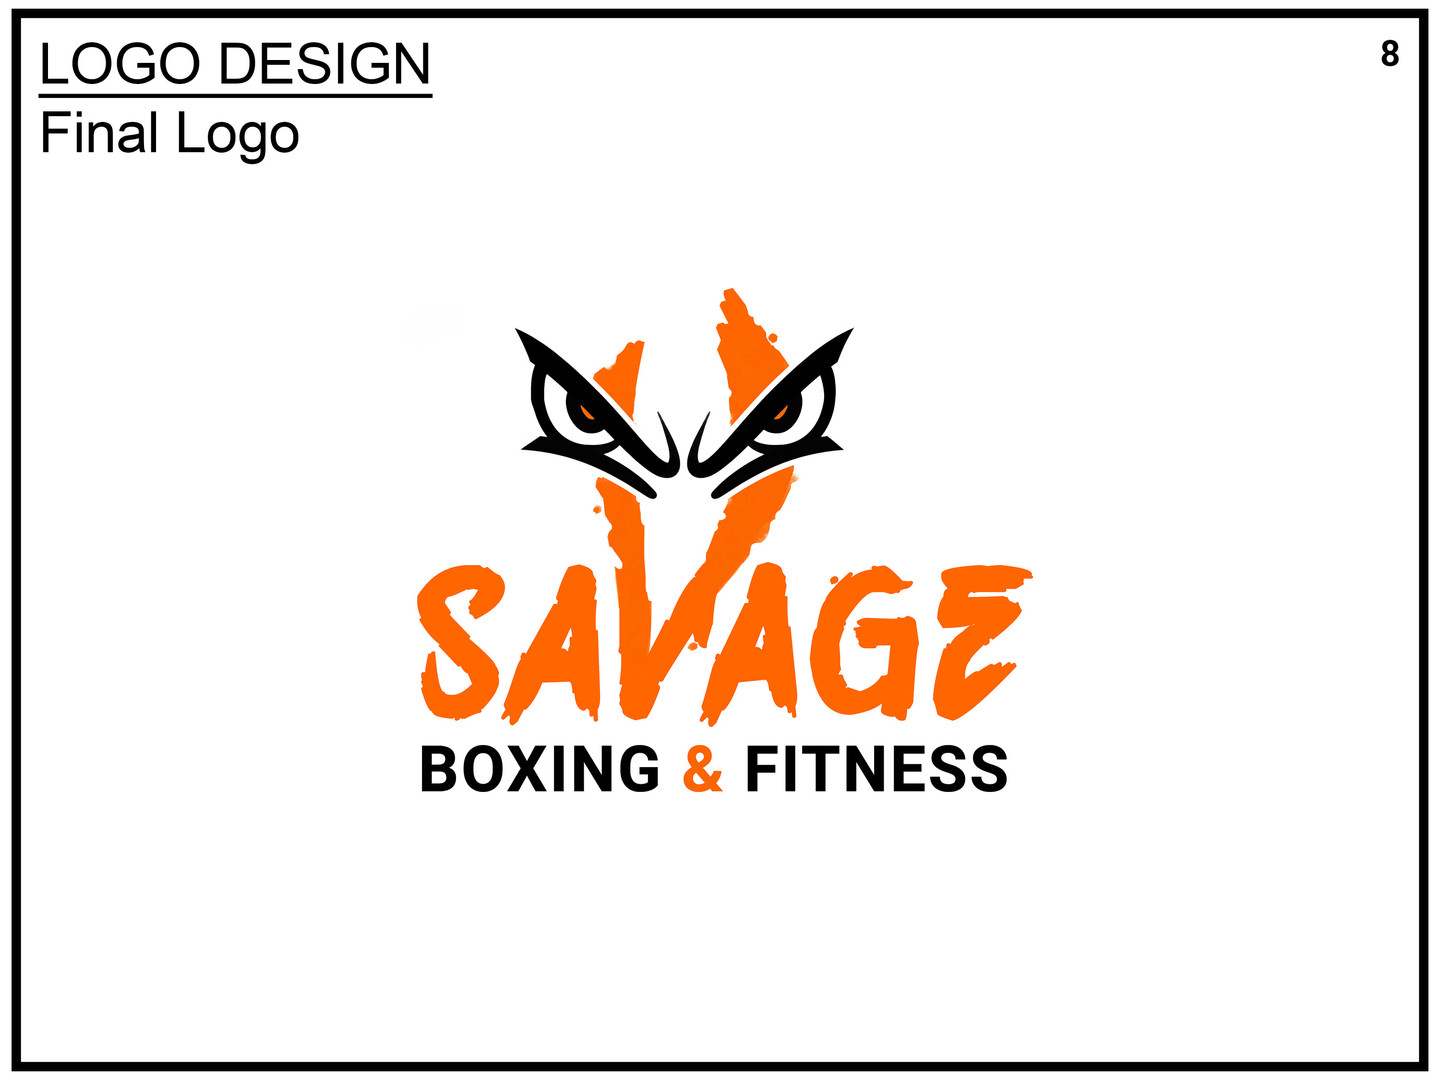 Savage Boxing Case Study_8.jpg